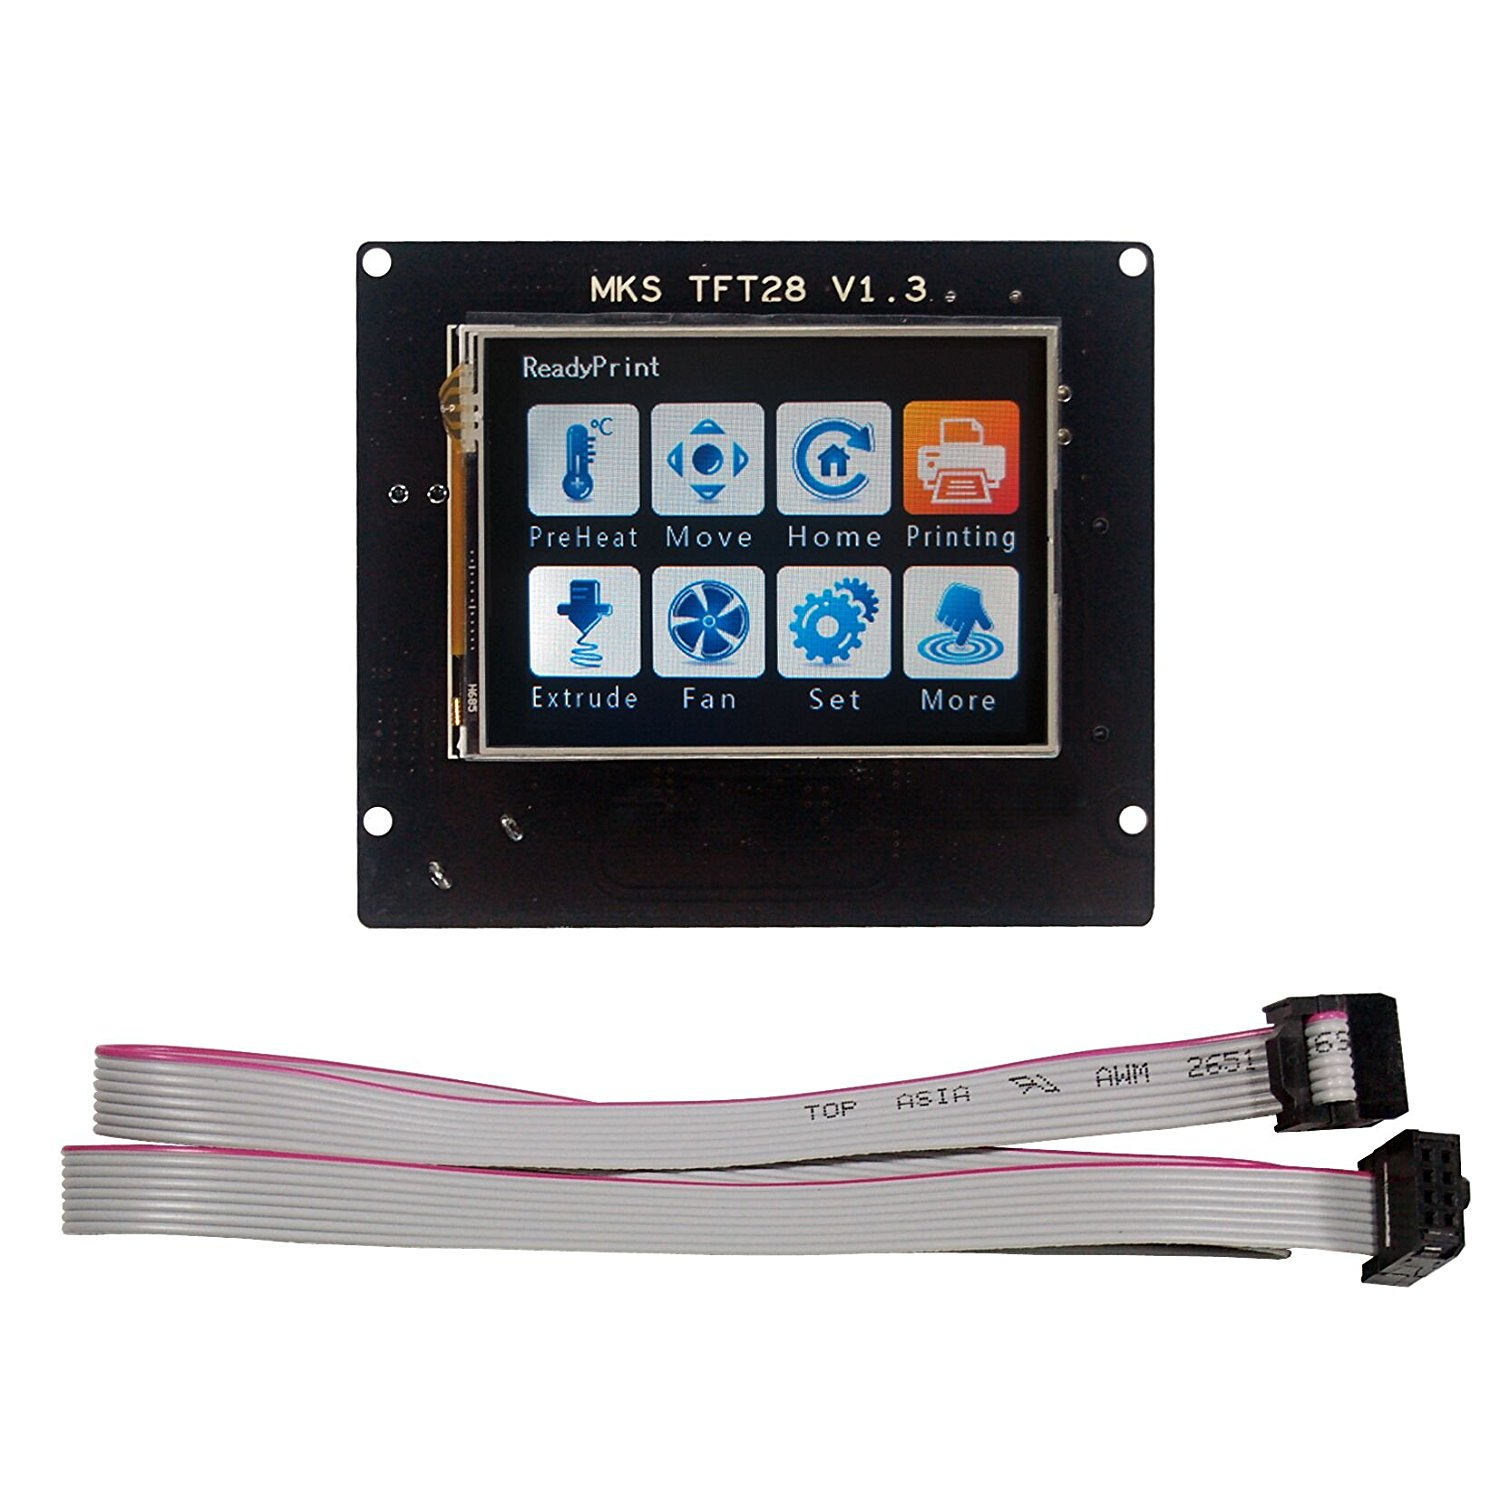 Ramps14 Mks Tft 28 Touch Screen User Guide Diy 3d Printer Connections Of Ramps 1 4